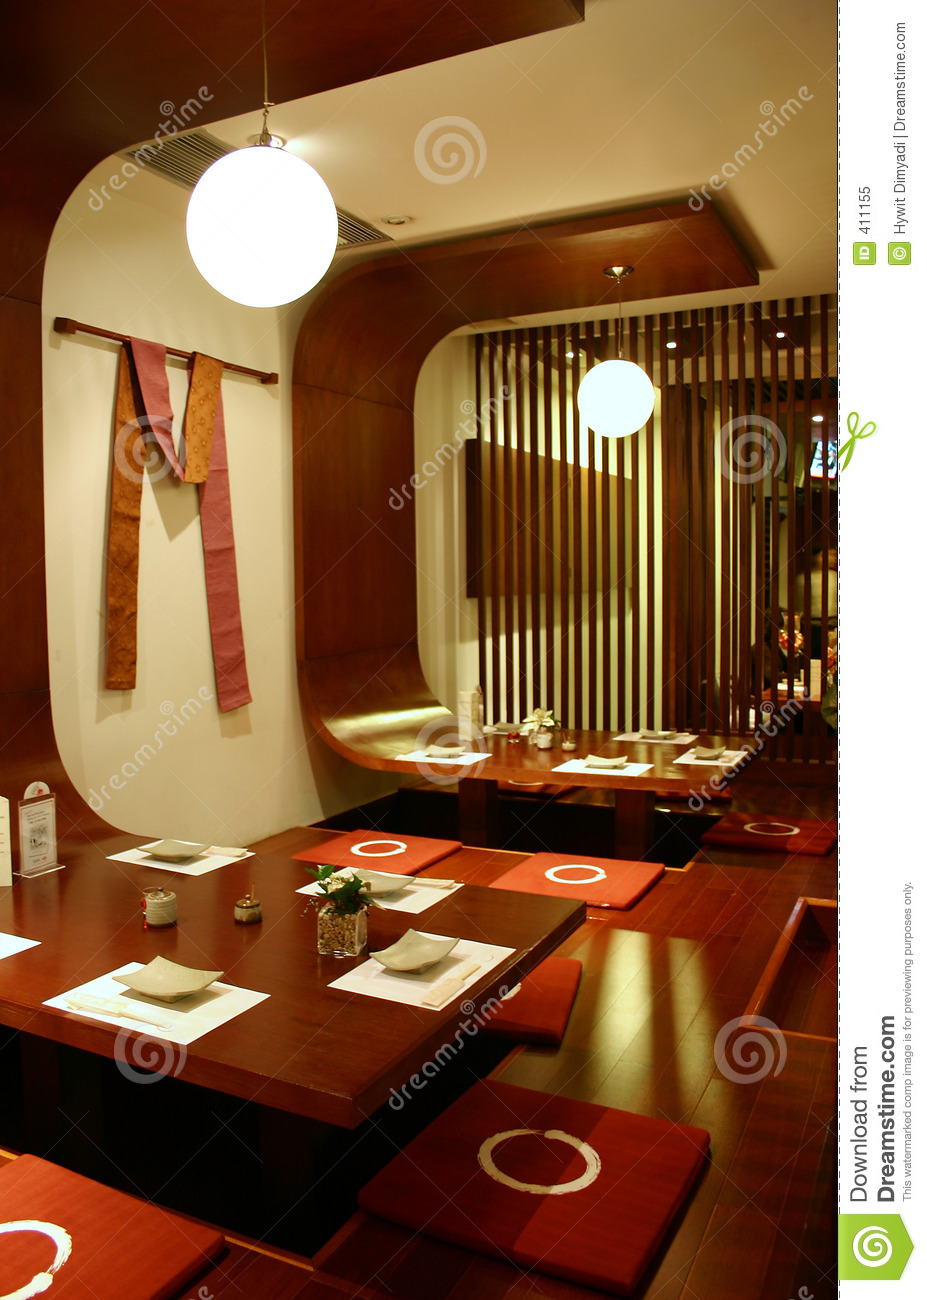 Restaurant Interior Royalty Free Stock Photo Image 411155